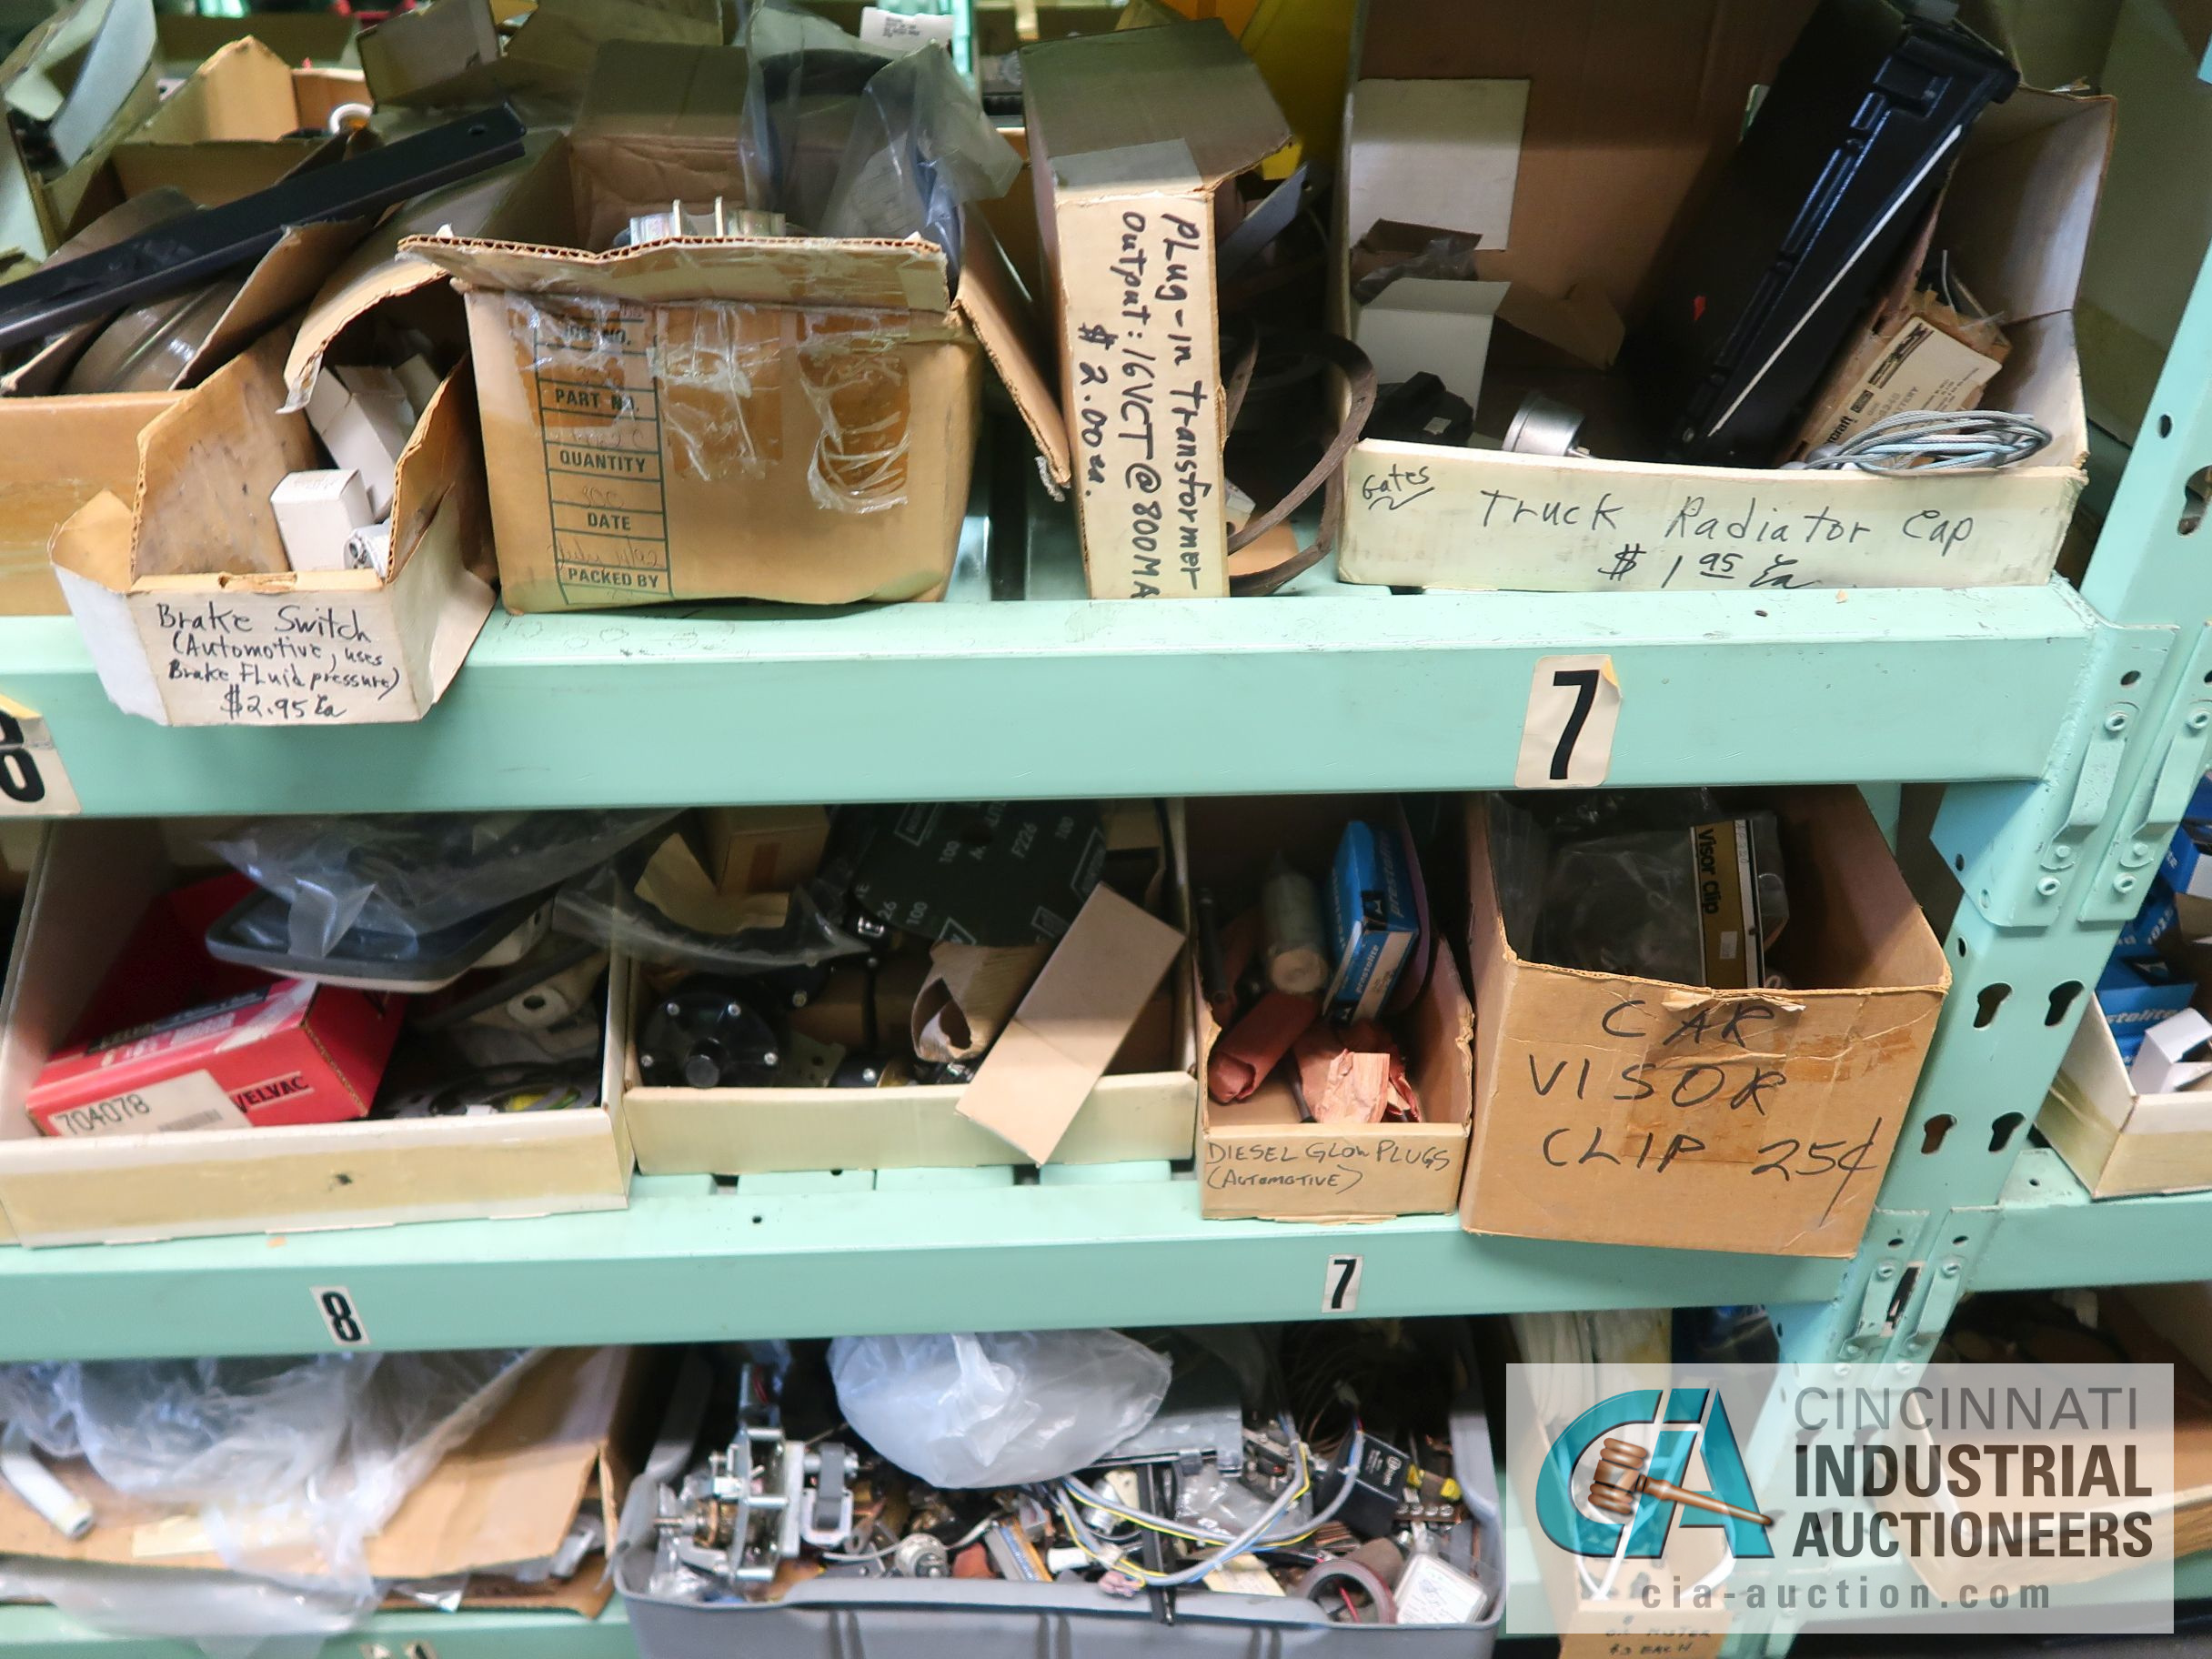 CONTENTS OF (5) RACKS INCLUDING MISCELLANEOUS AUTOMOTIVE PARTS, LIGHTS, FILTERS, ENGINE PARTS, RIMS, - Image 25 of 29